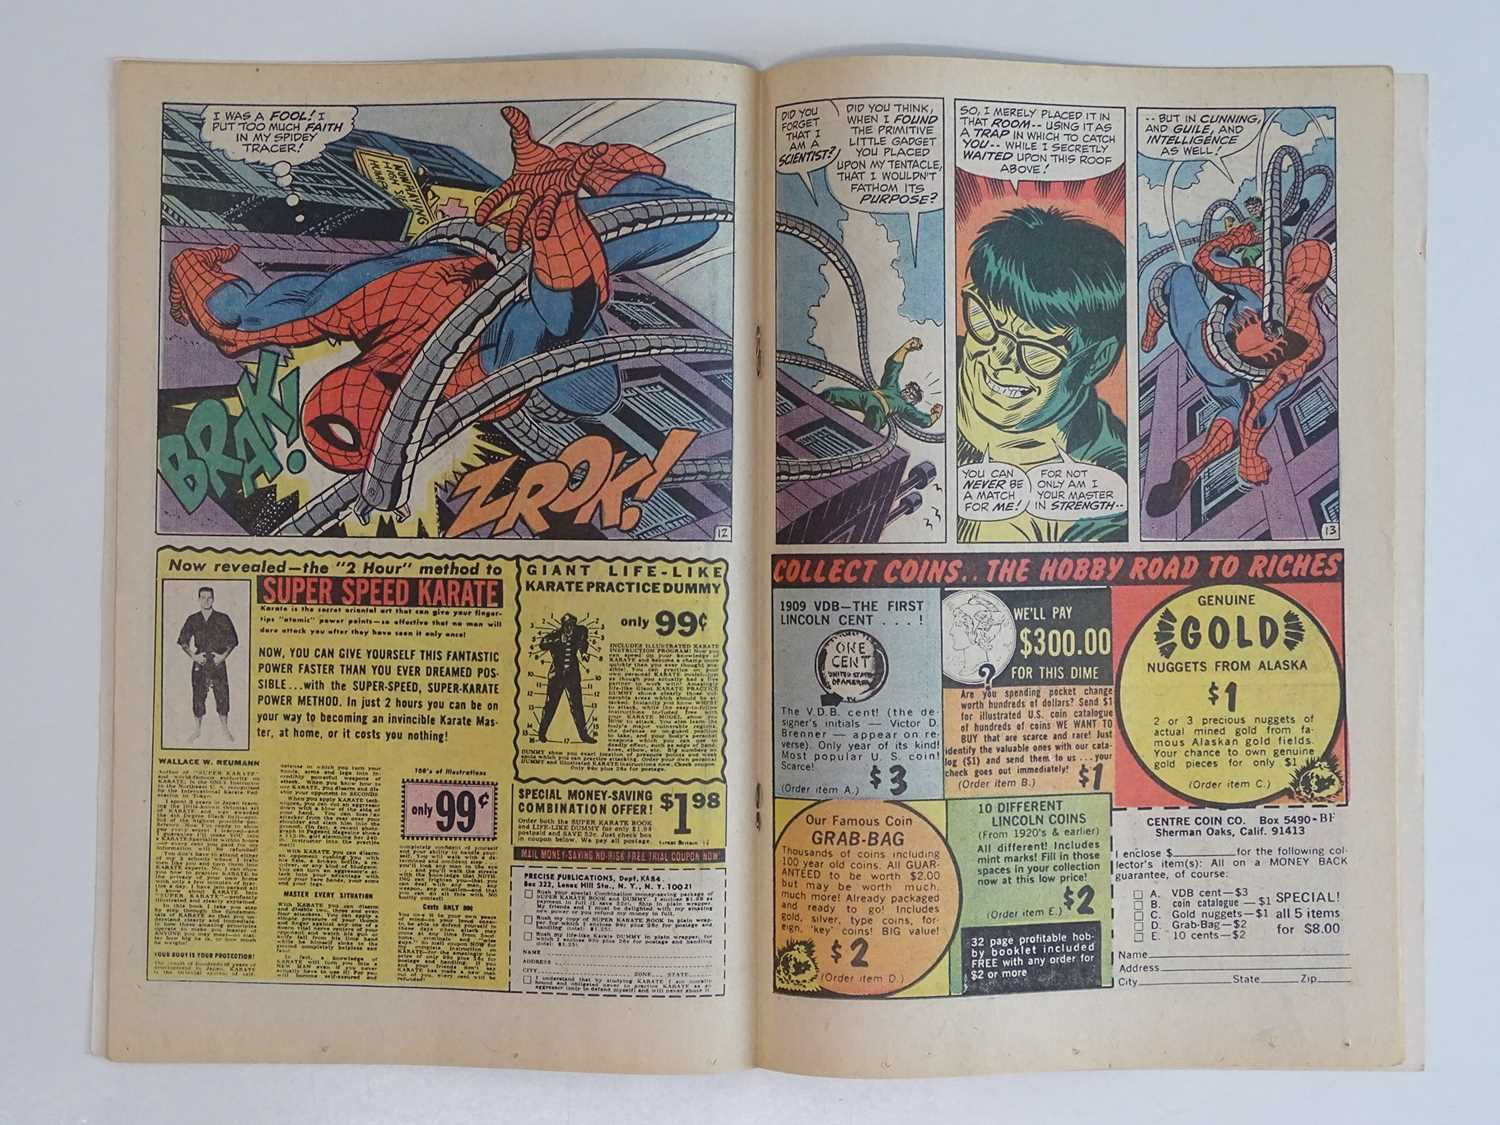 AMAZING SPIDER-MAN # 90 - (1970 - MARVEL - Uk Cover Price) - 'Death' of Captain Stacy + Doctor - Image 5 of 9